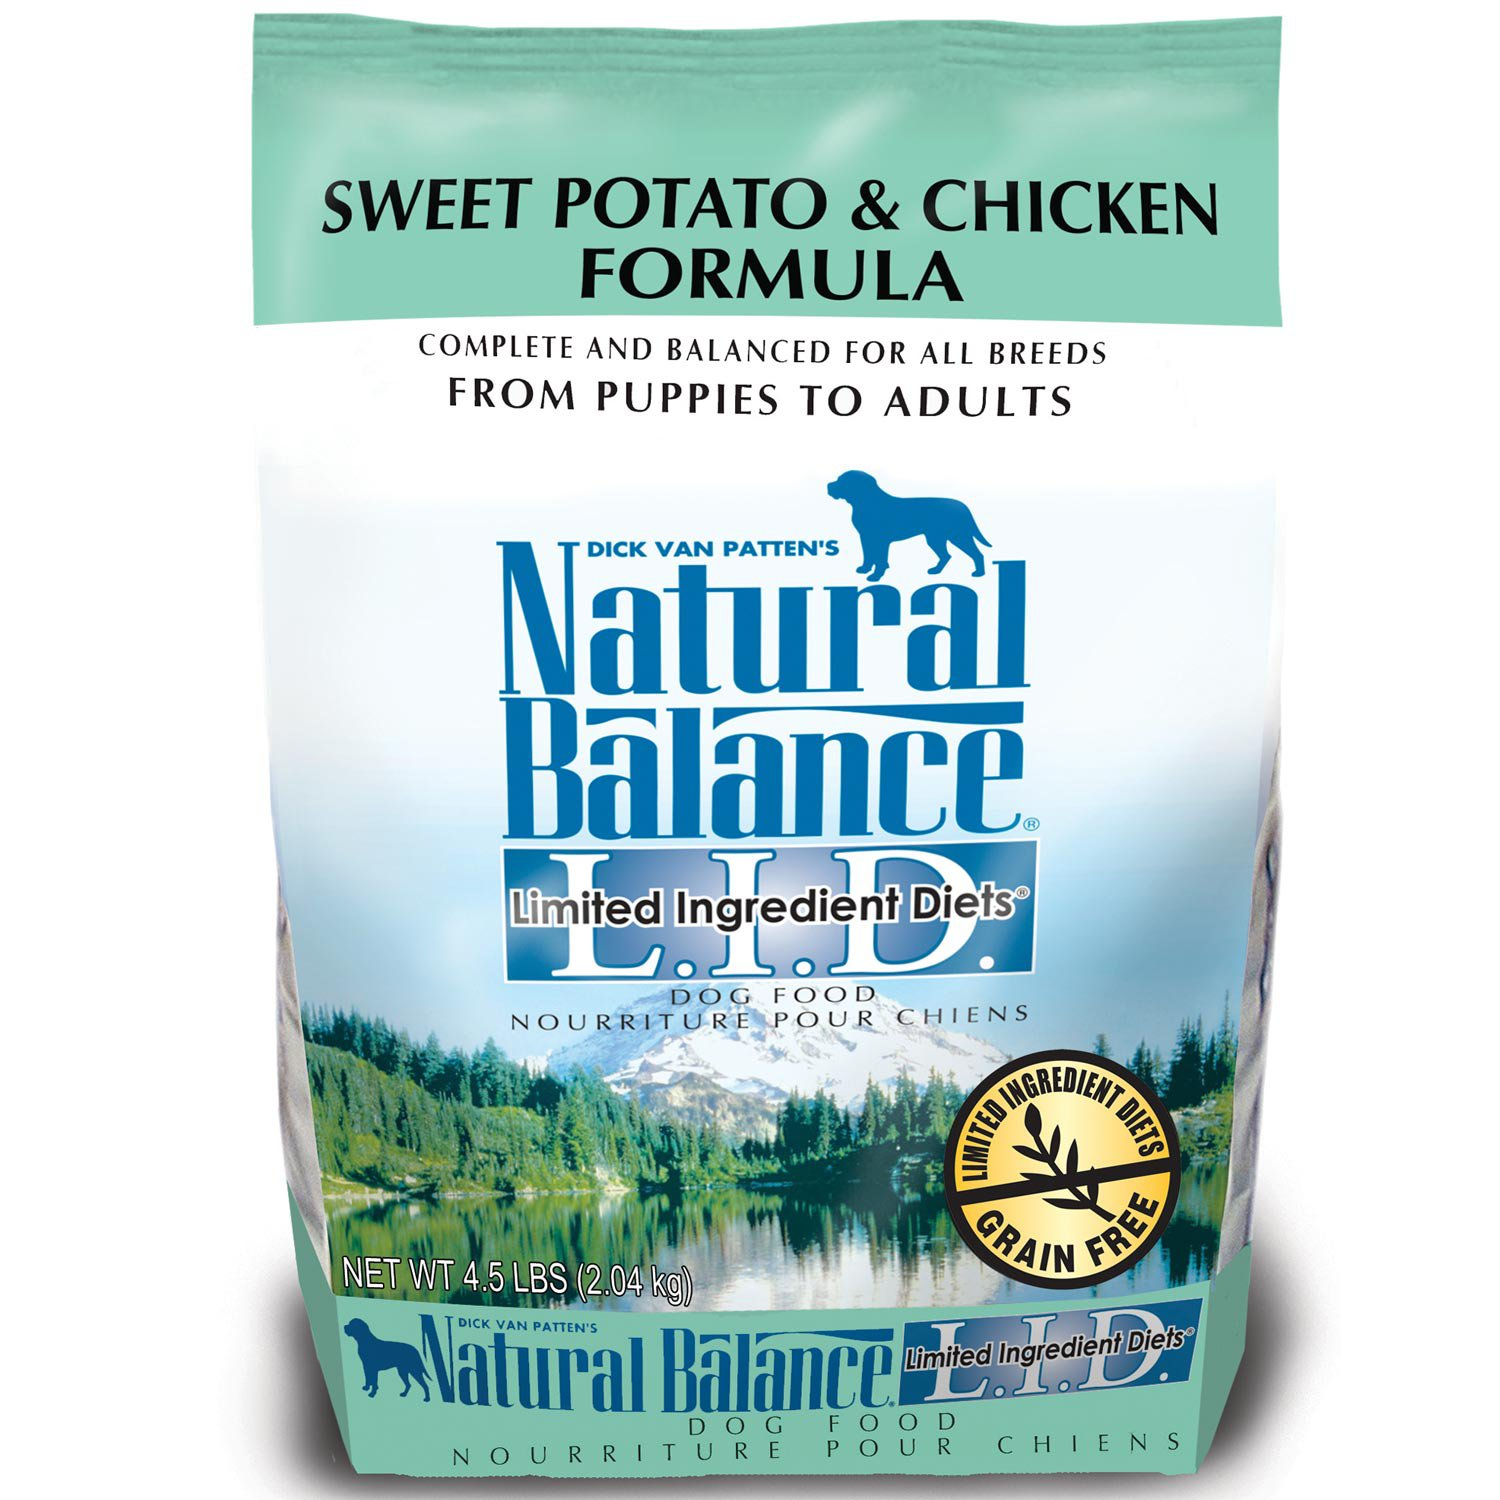 Natural Balance SWEET POTATO & CHICK 26 LBS